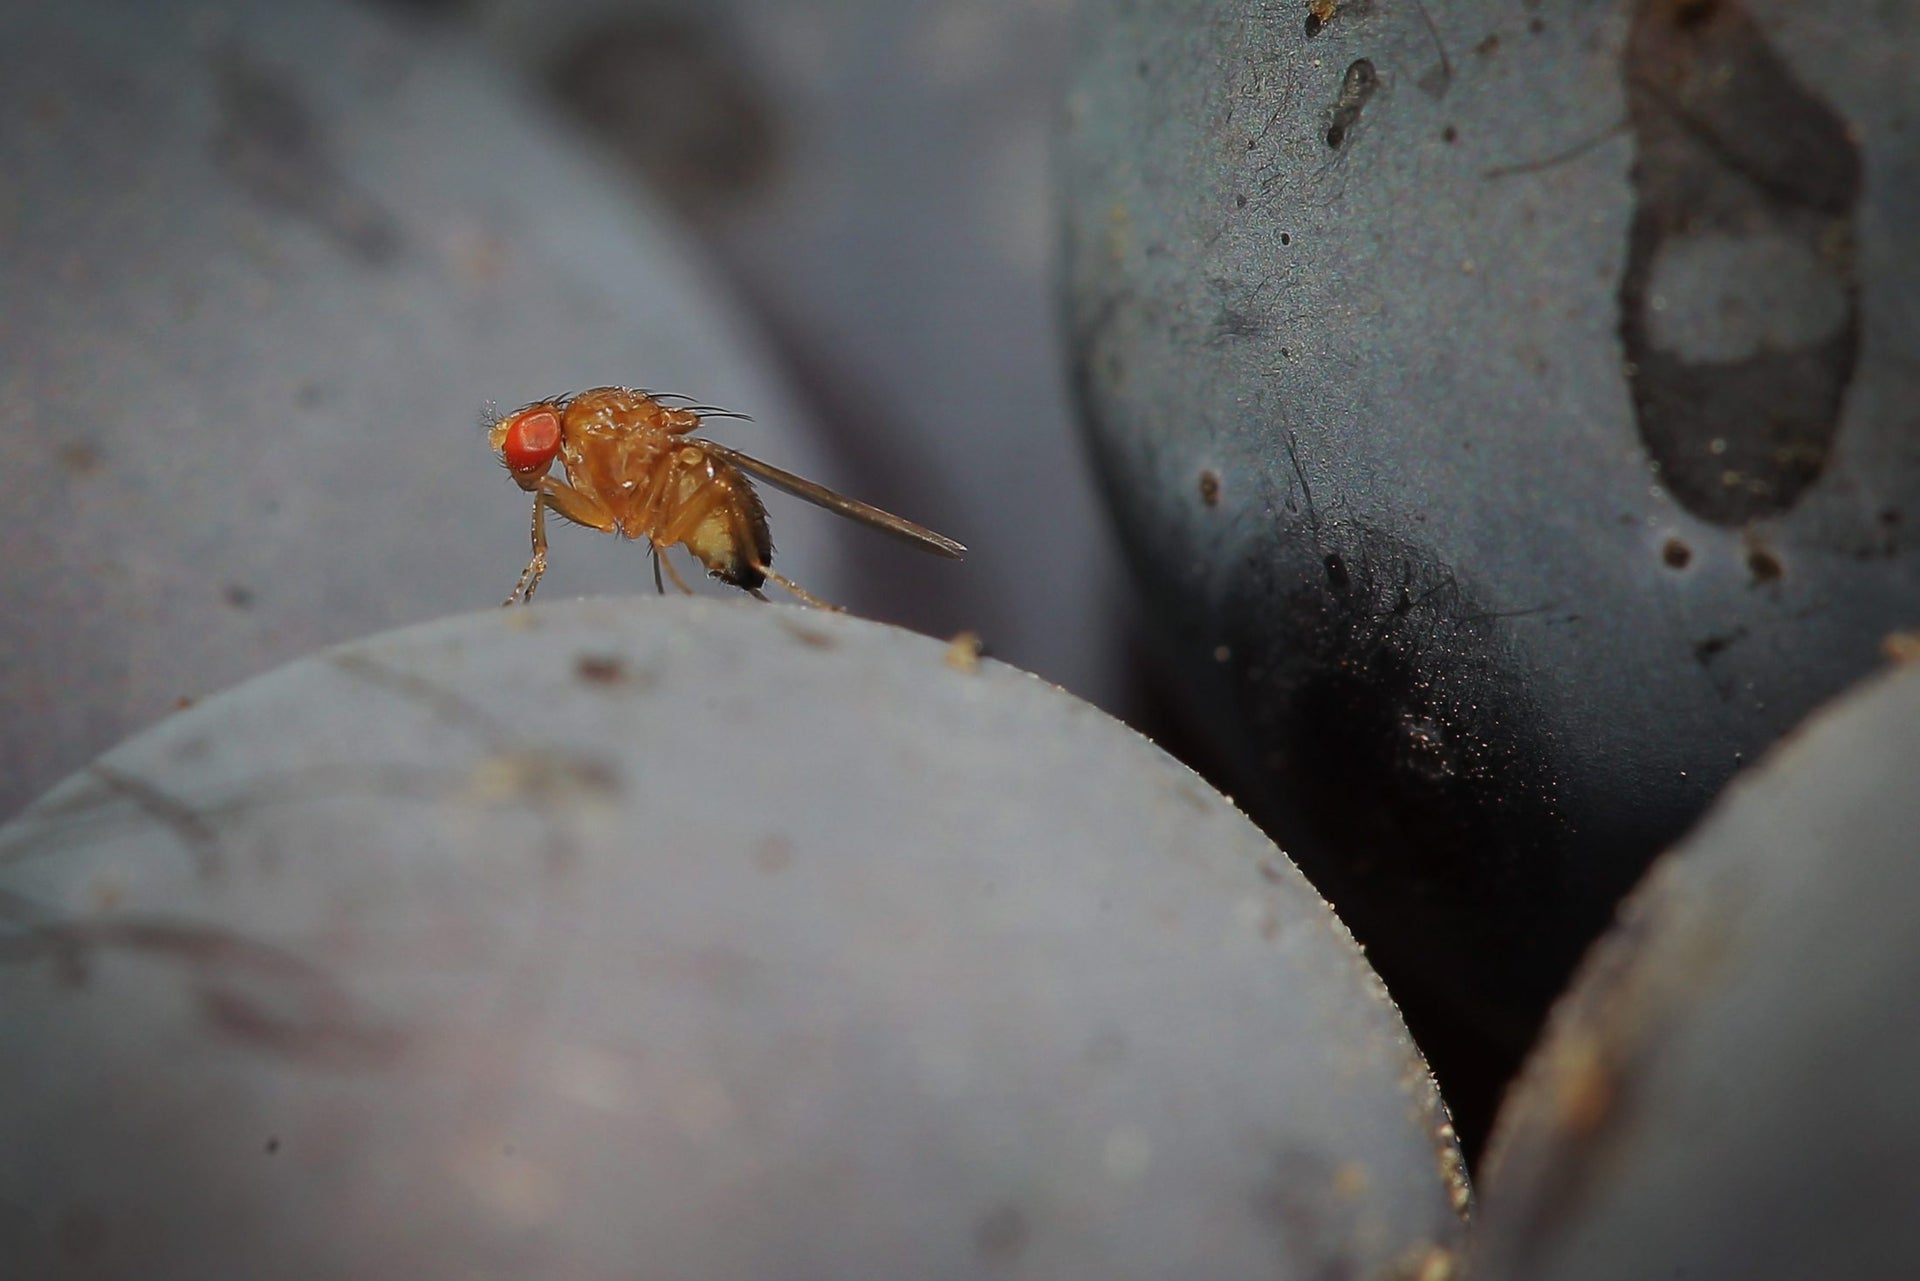 Picture shows a fruit fly sitting on grapes